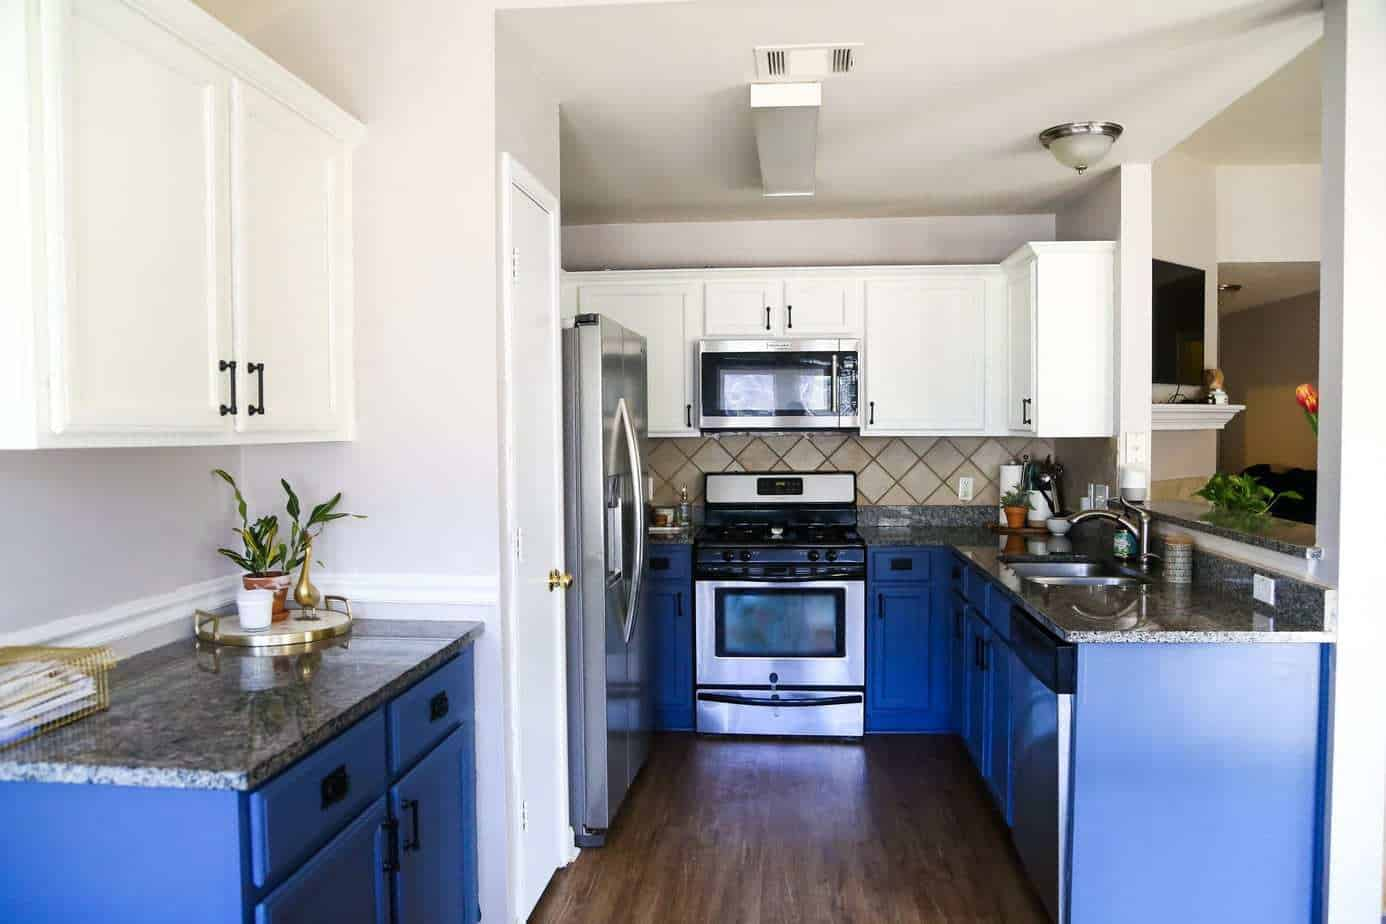 kitchens white cabinets blue amp white kitchen cabinets amp renovations 22256